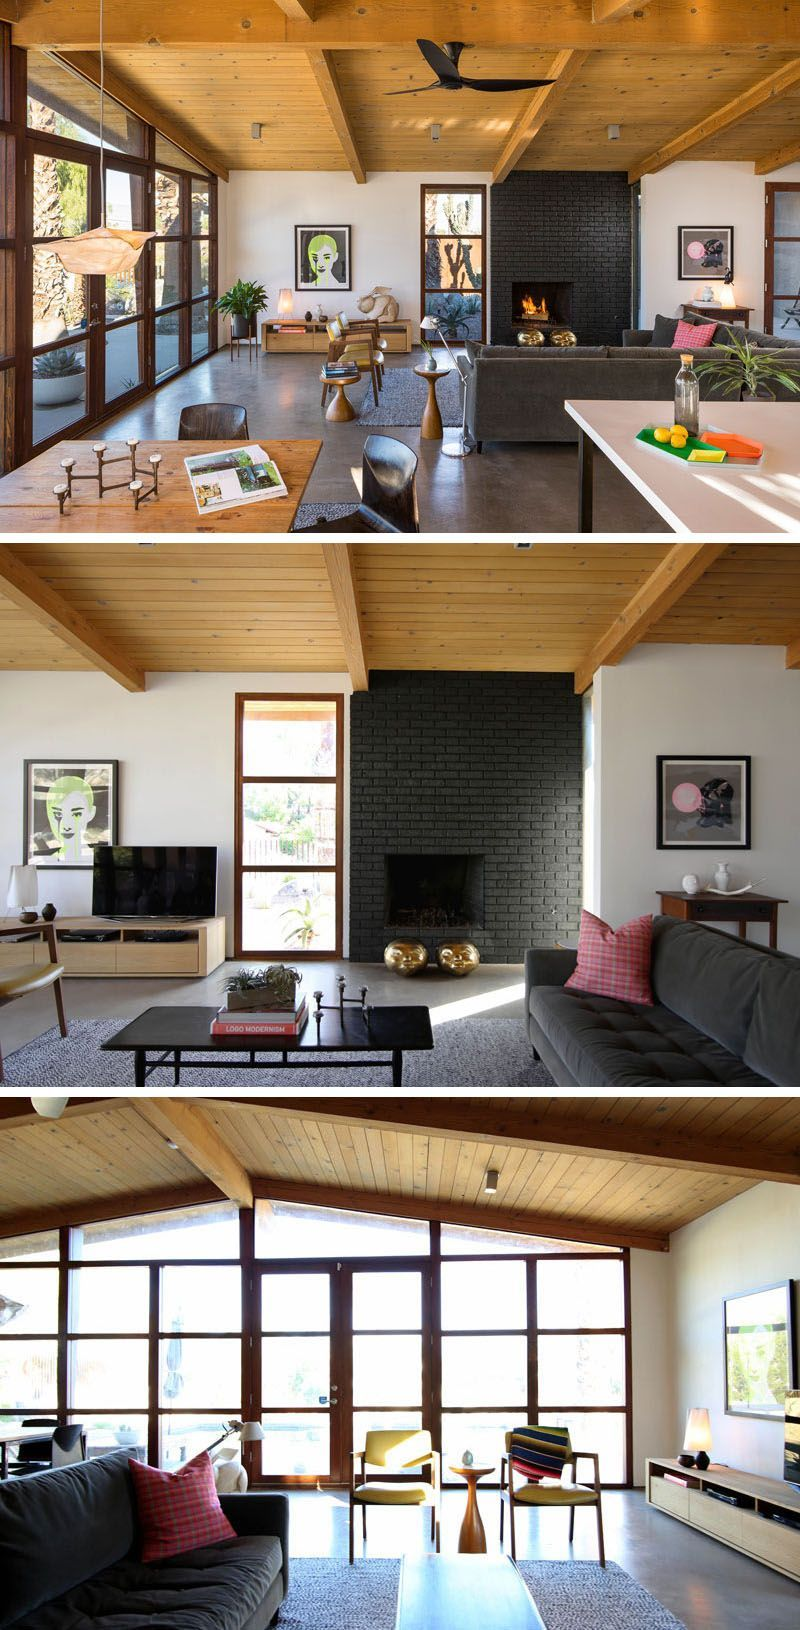 Interior Decorating Ideas For Living Room Drawing Room Setting Ideas Ideas For Living R Ranch House Remodel Mid Century Modern House Small Basement Remodel #small #ranch #living #room #ideas